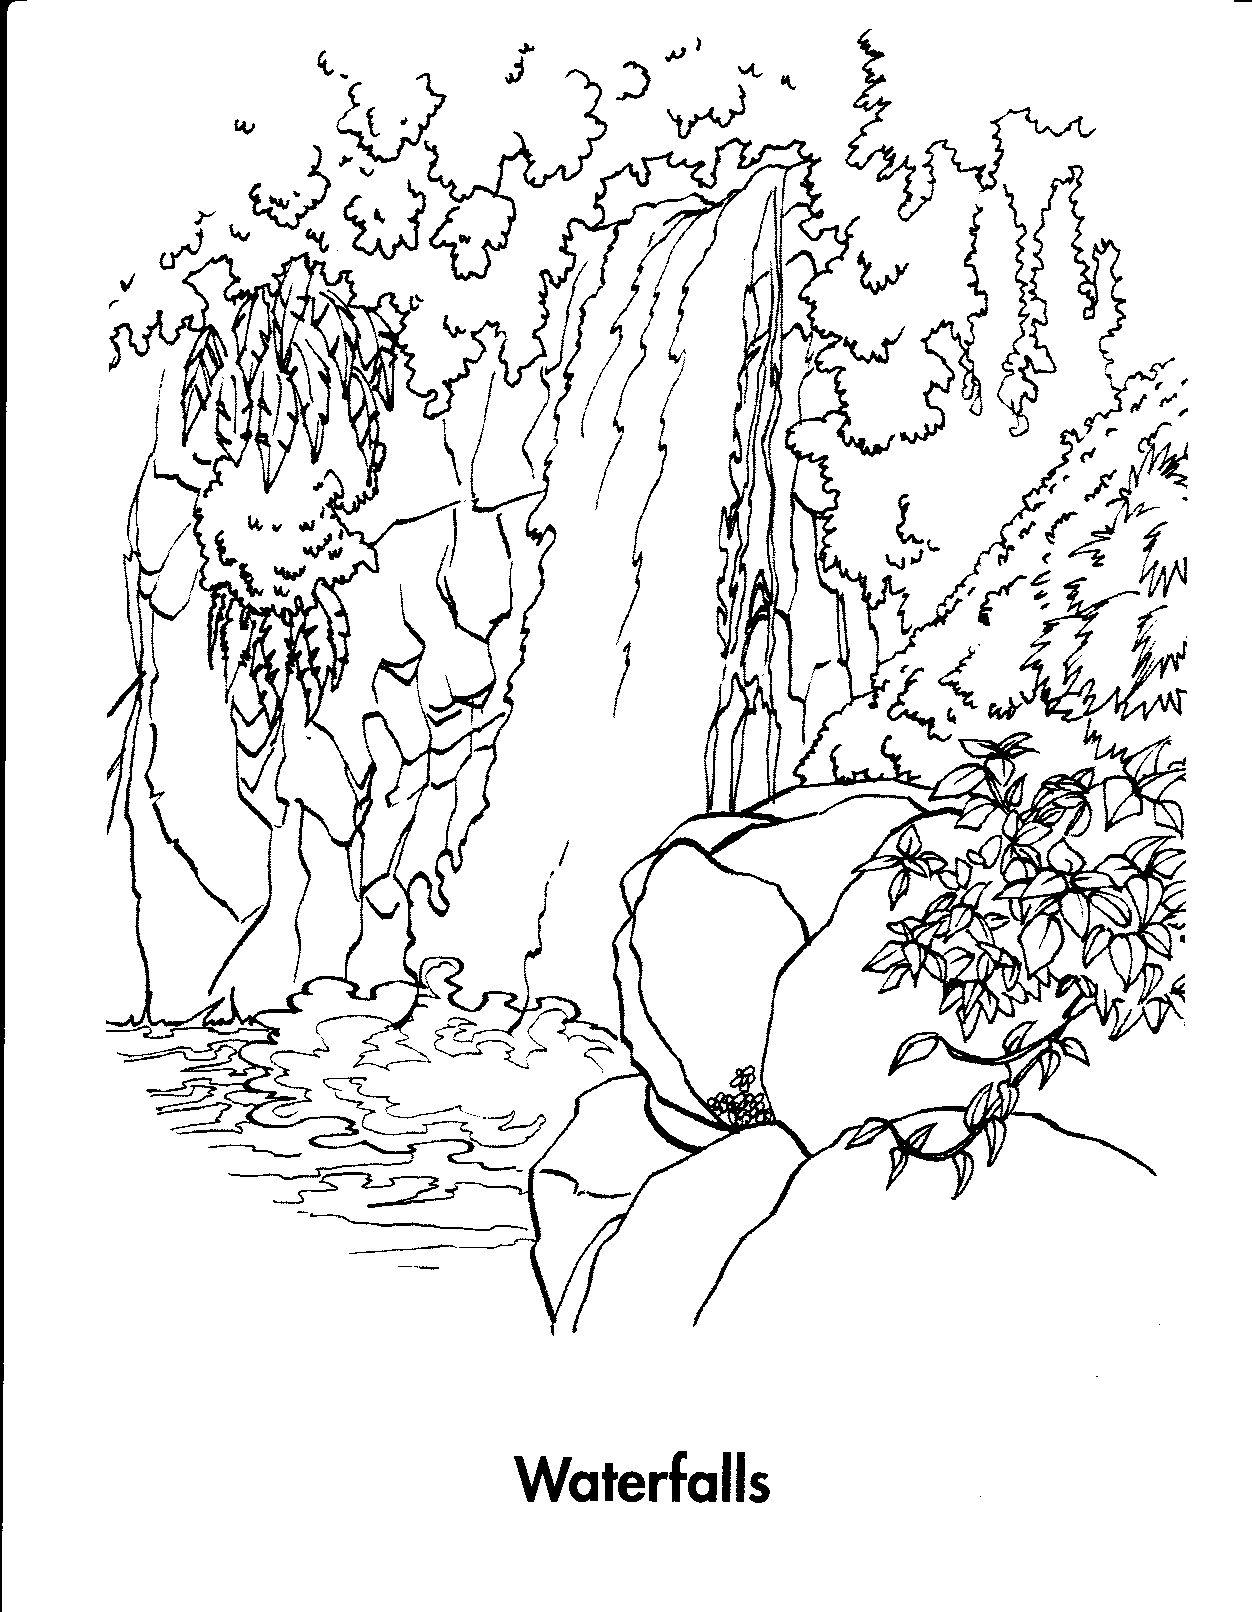 Waterfall 7 Nature Printable Coloring Pages With Coloring